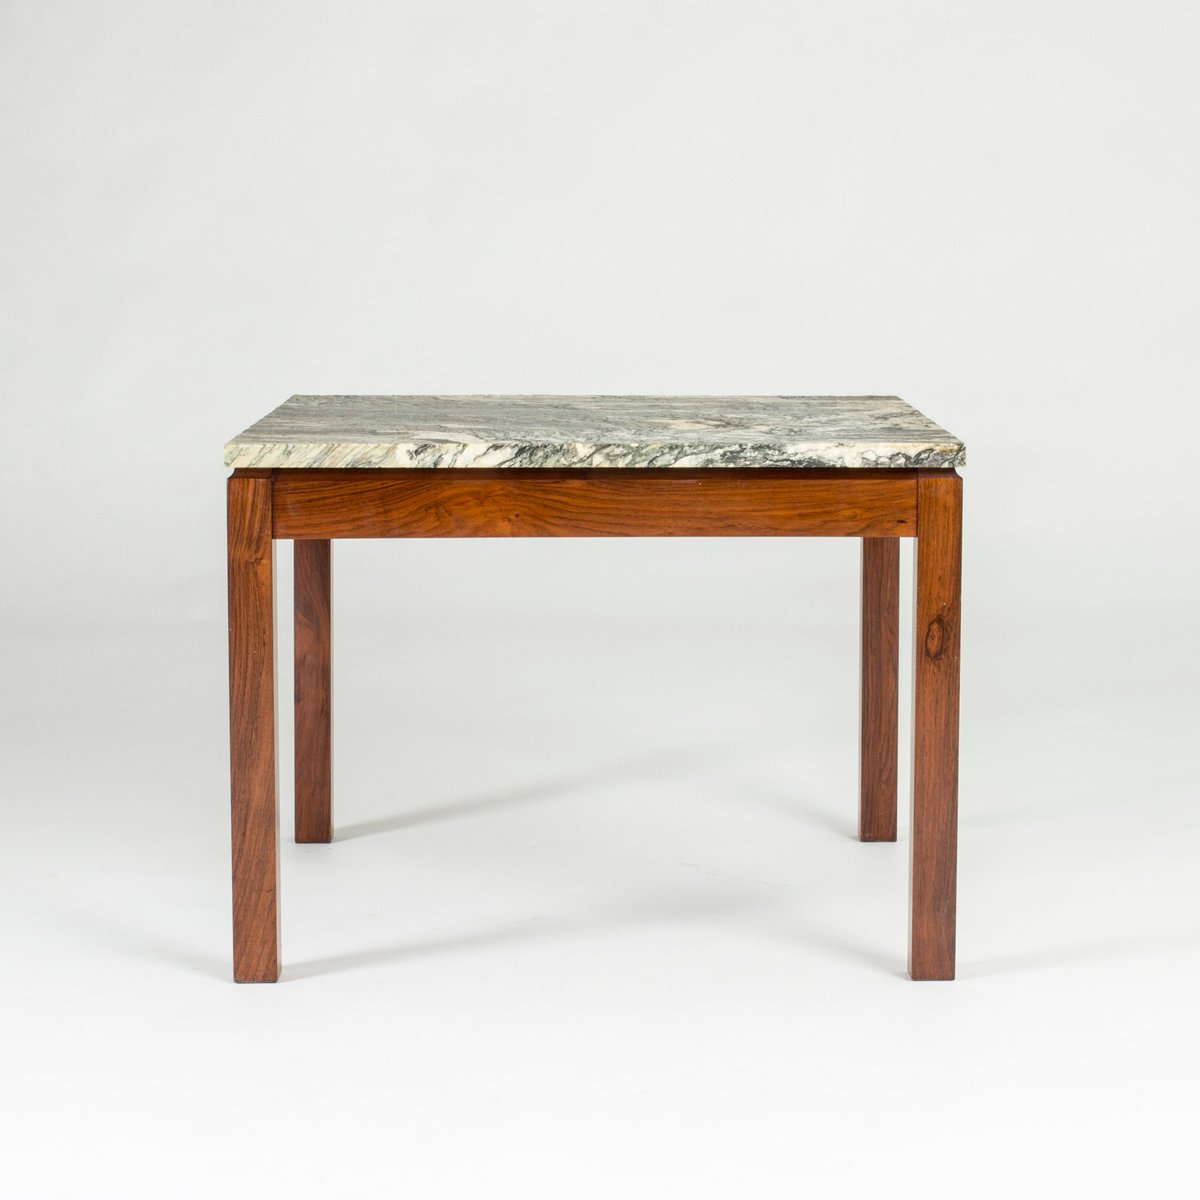 Danish Marble & Rosewood Coffee Table, 1960s